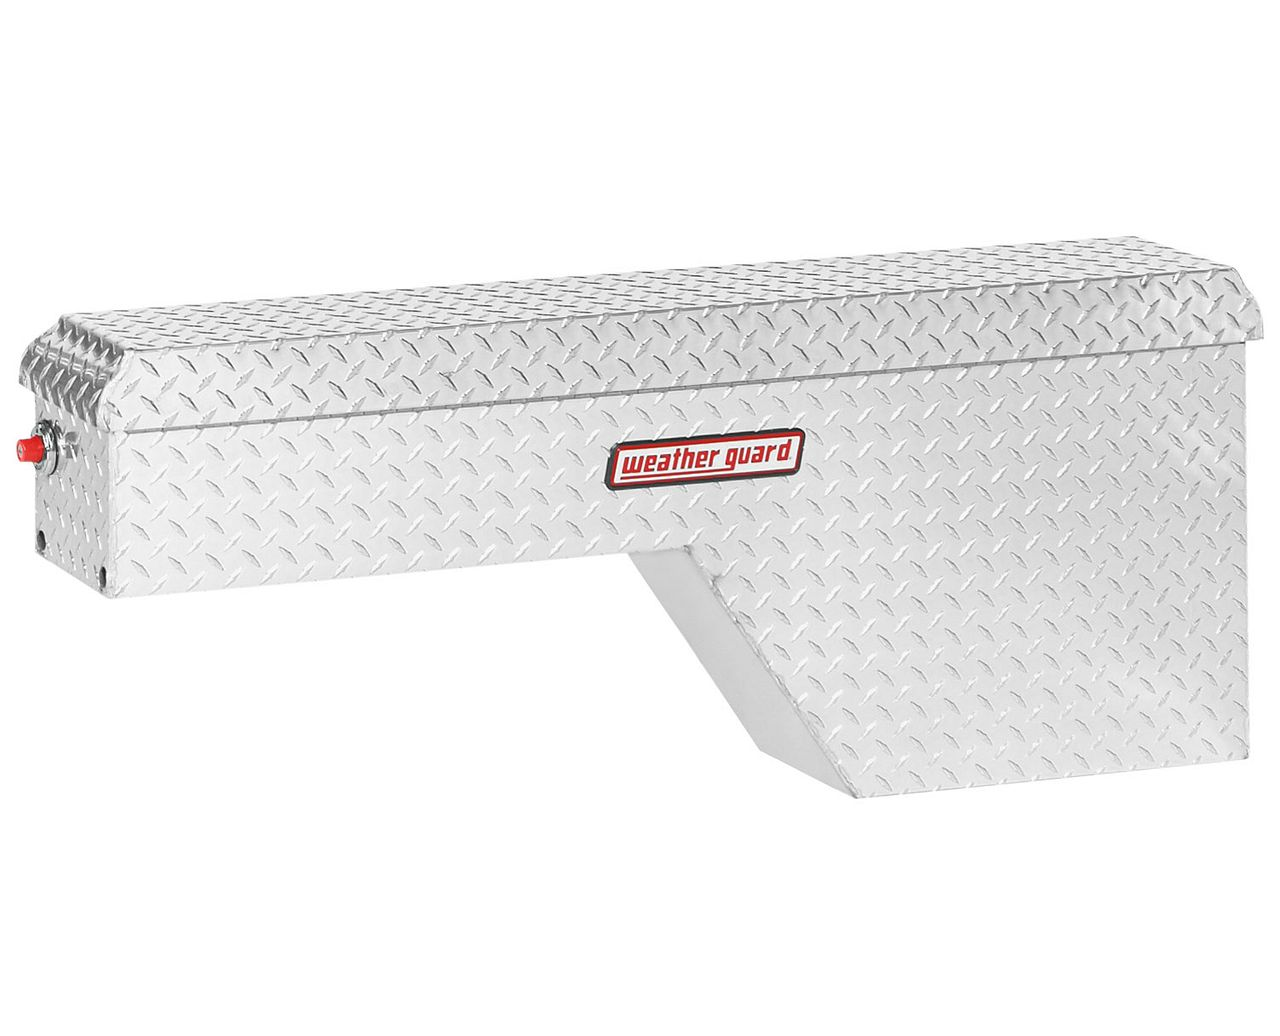 Weather Guard 171-0-01 Pork Chop Box, Aluminum, Passenger Side